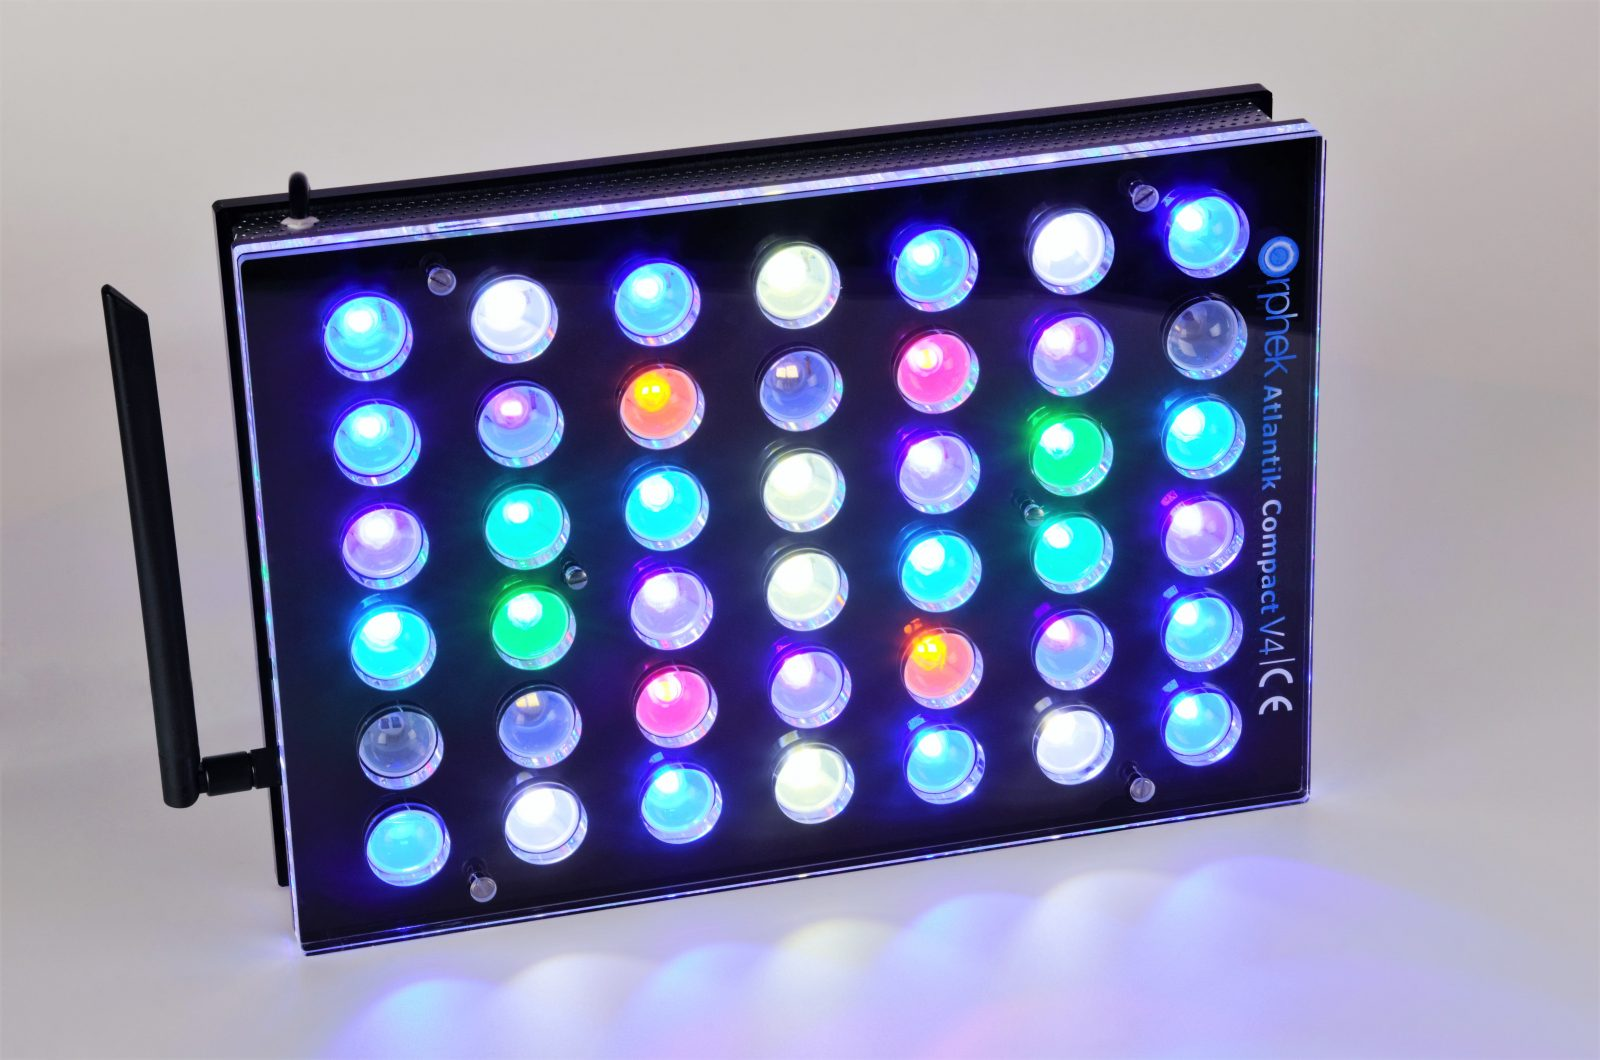 Orphek-Aquarium-LED-Lighting-Atlantik -Compact-V4-licht -on-kanaal 1 + 2 + 3 + 4